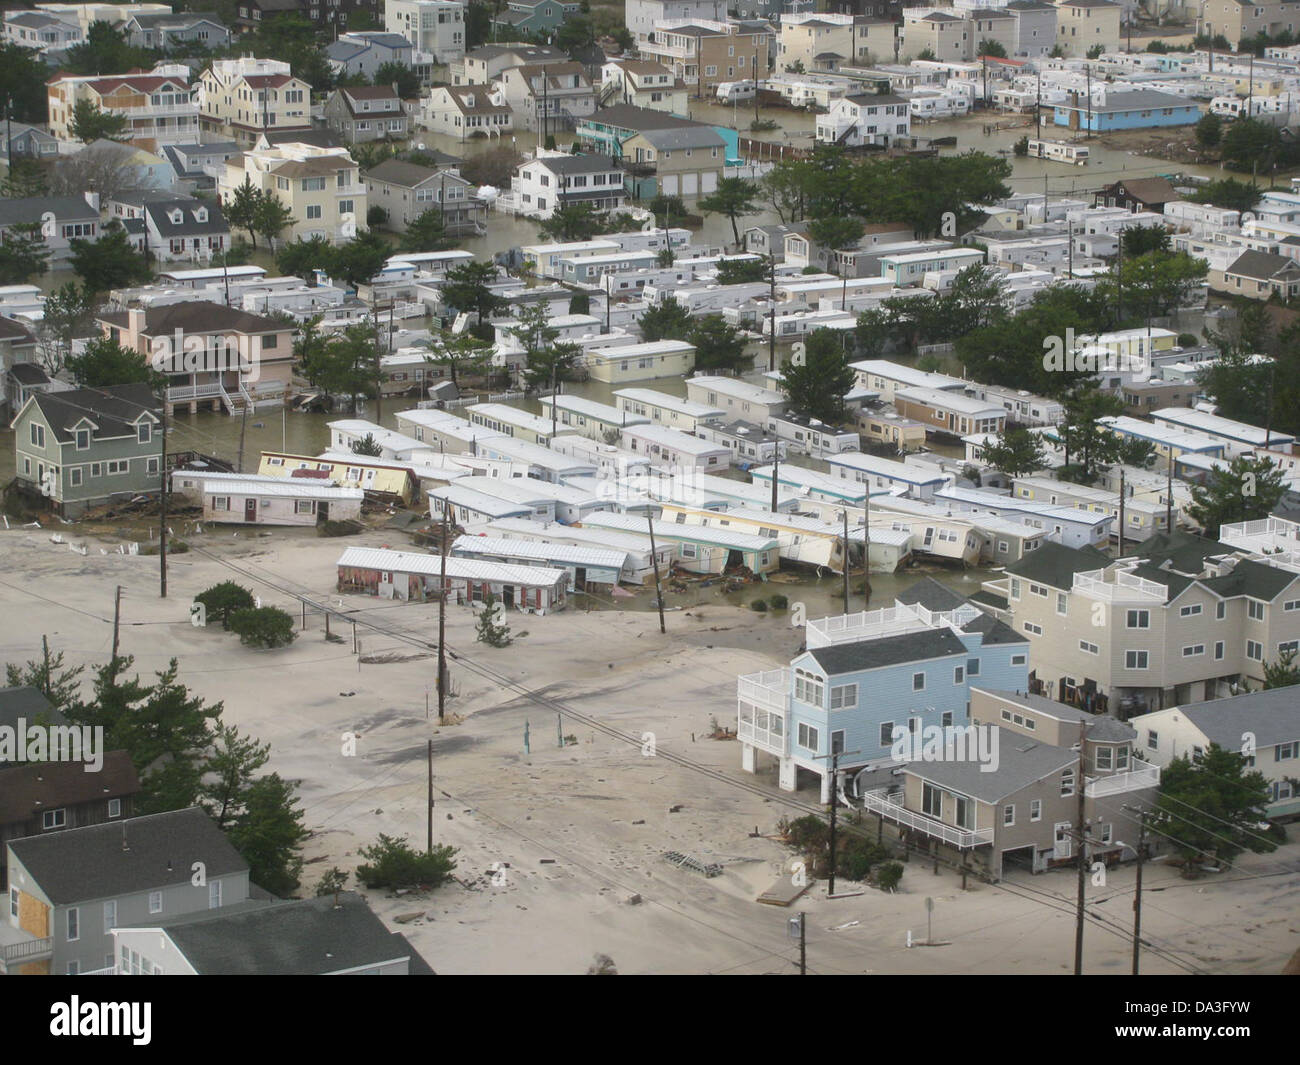 USA New Jersey Brigantine Hurricane Sandy Aftermath Homes displaced October 30, 2012 - Stock Image